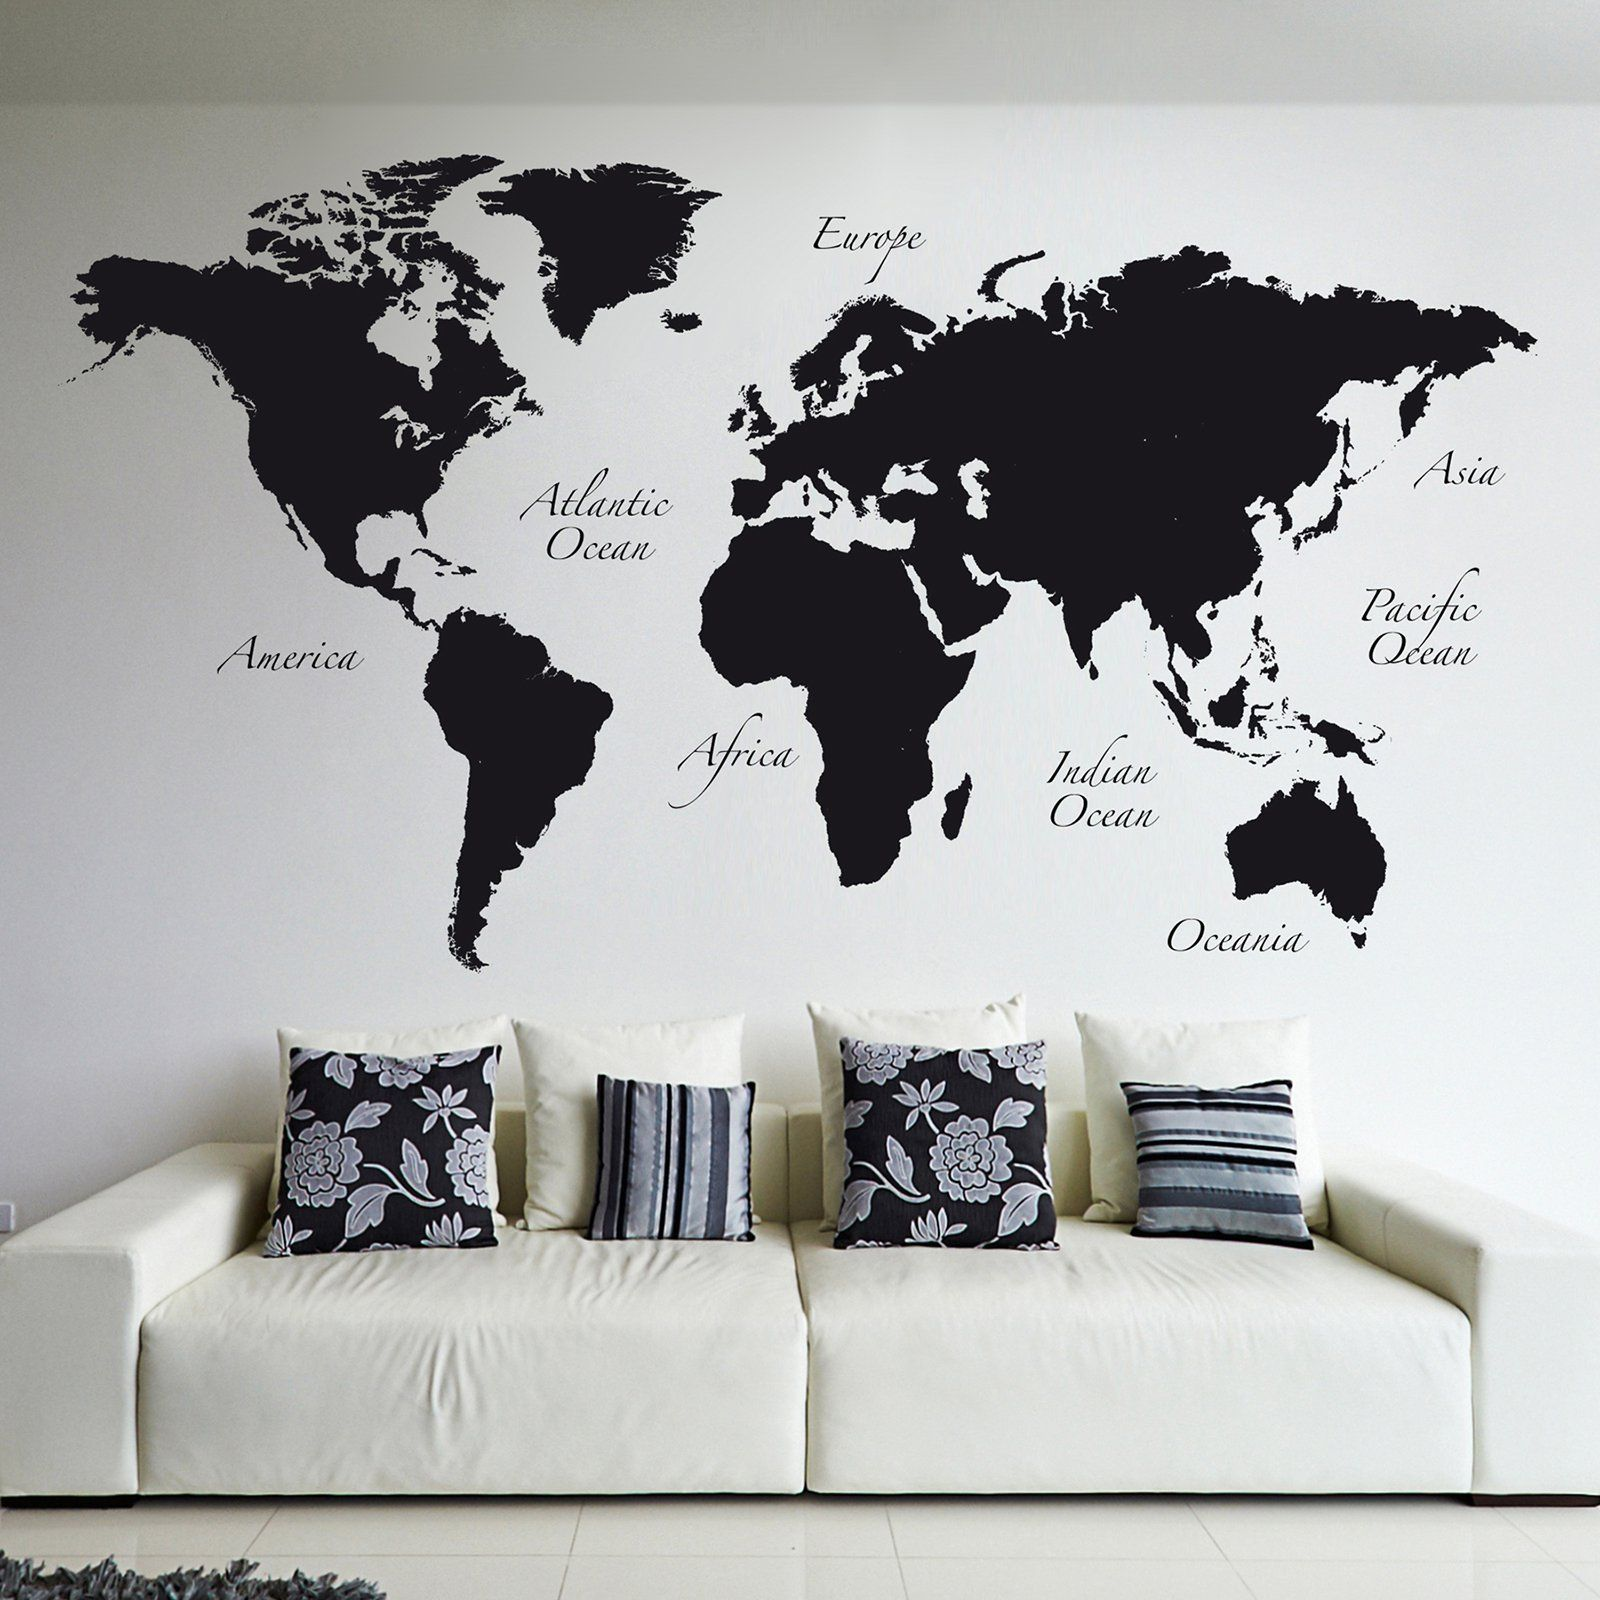 Home decor line black world map wall decal cr 81105 decoracion home decor line black world map wall decal cr 81105 gumiabroncs Image collections